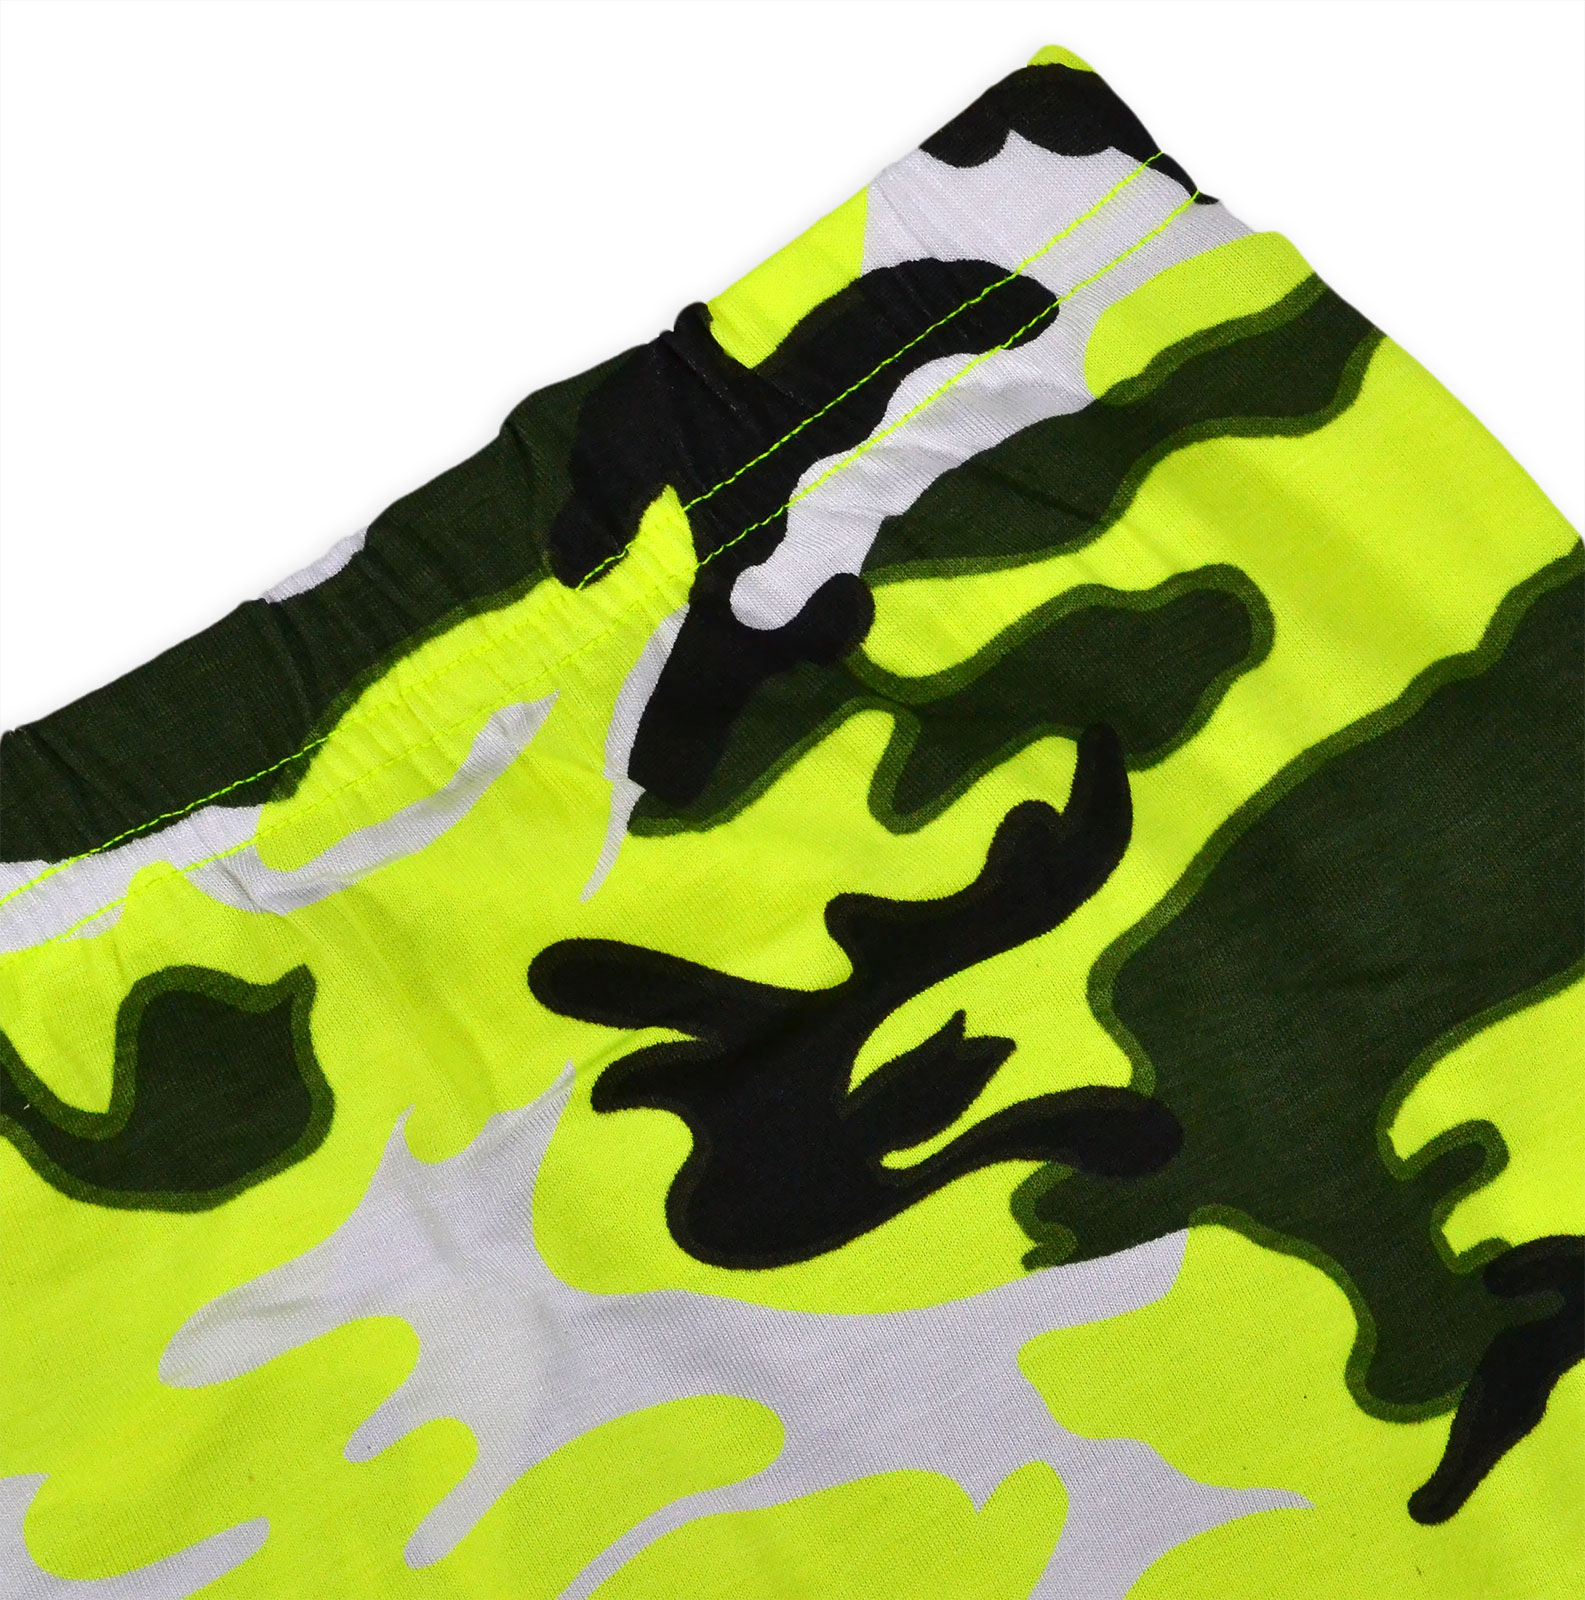 62c266f922df Girls Neon Camo Crop Top And Skirt Outfit New Kids Summer Set Ages 7 ...